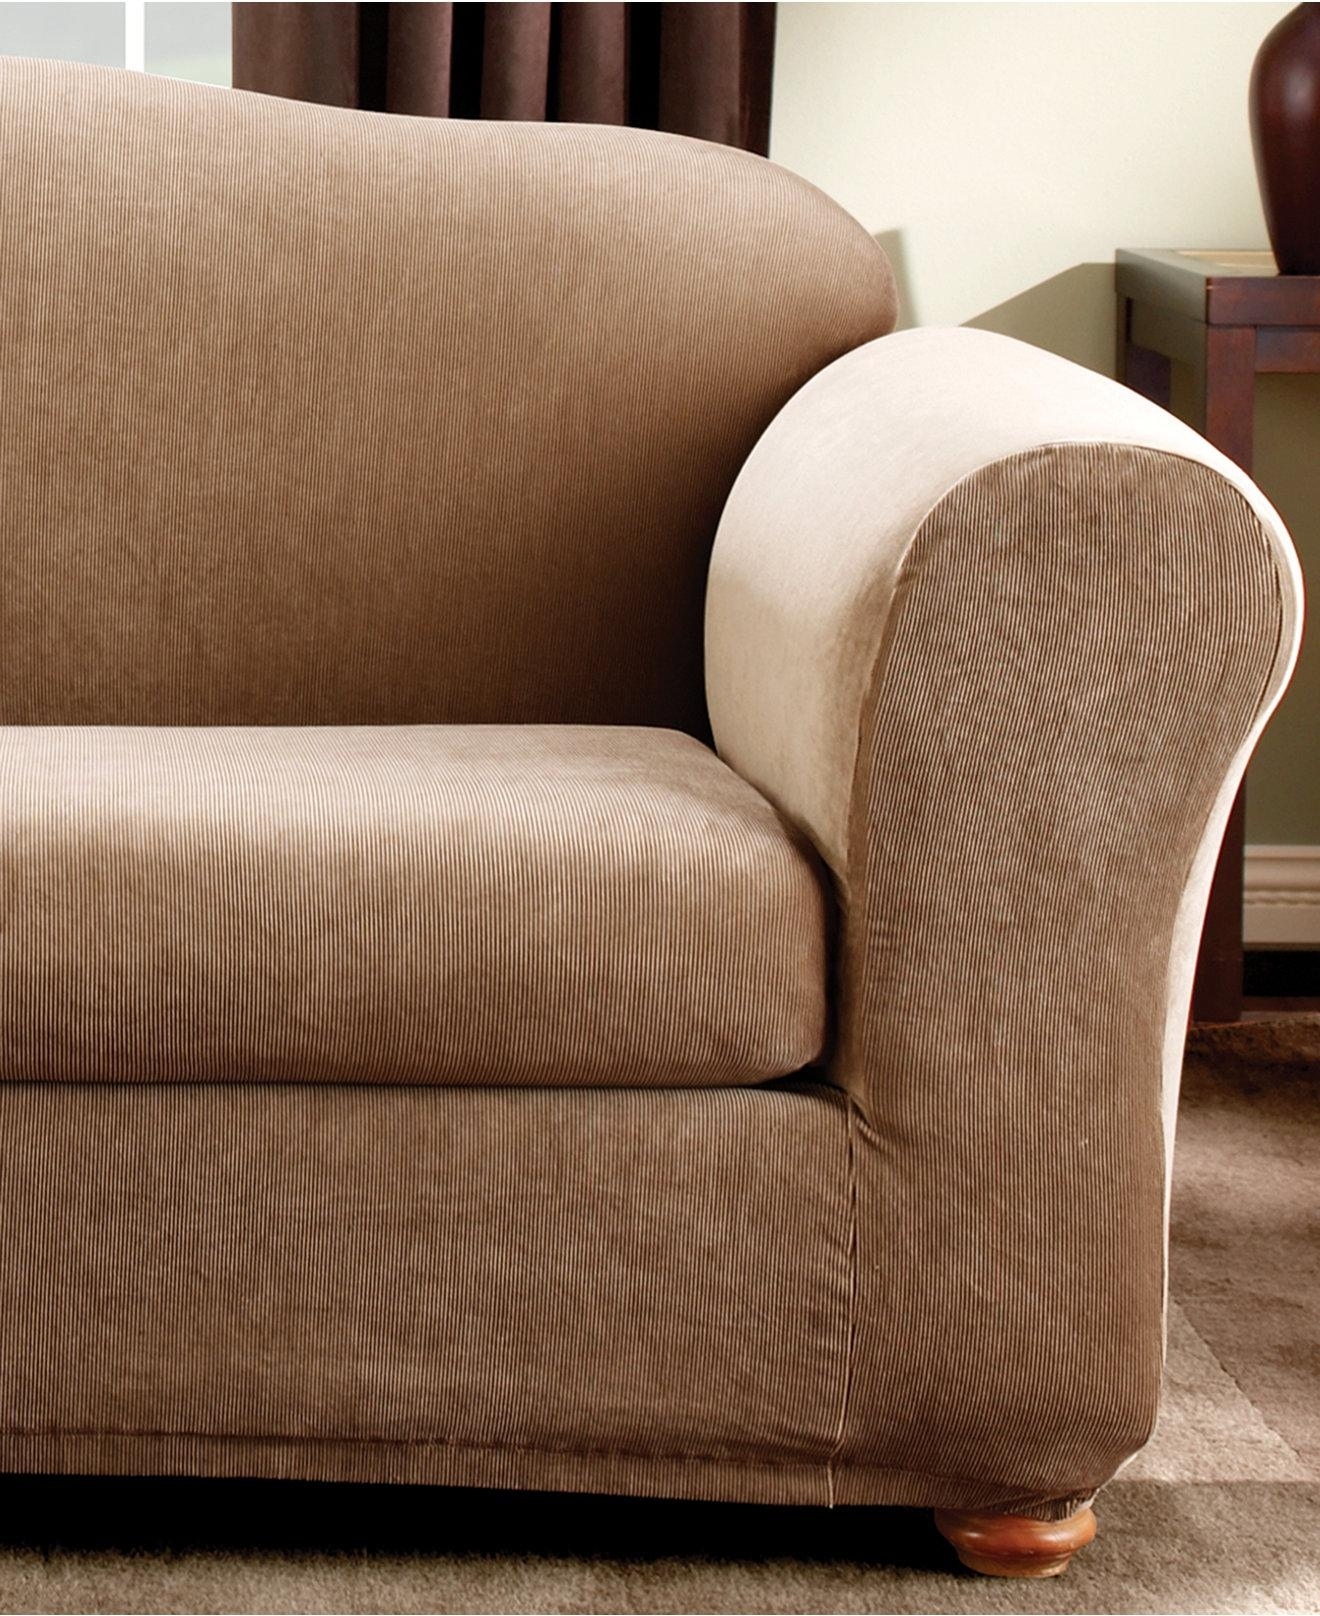 3 Piece Sofa Covers | Design Your Life with regard to 3 Piece Sofa Covers